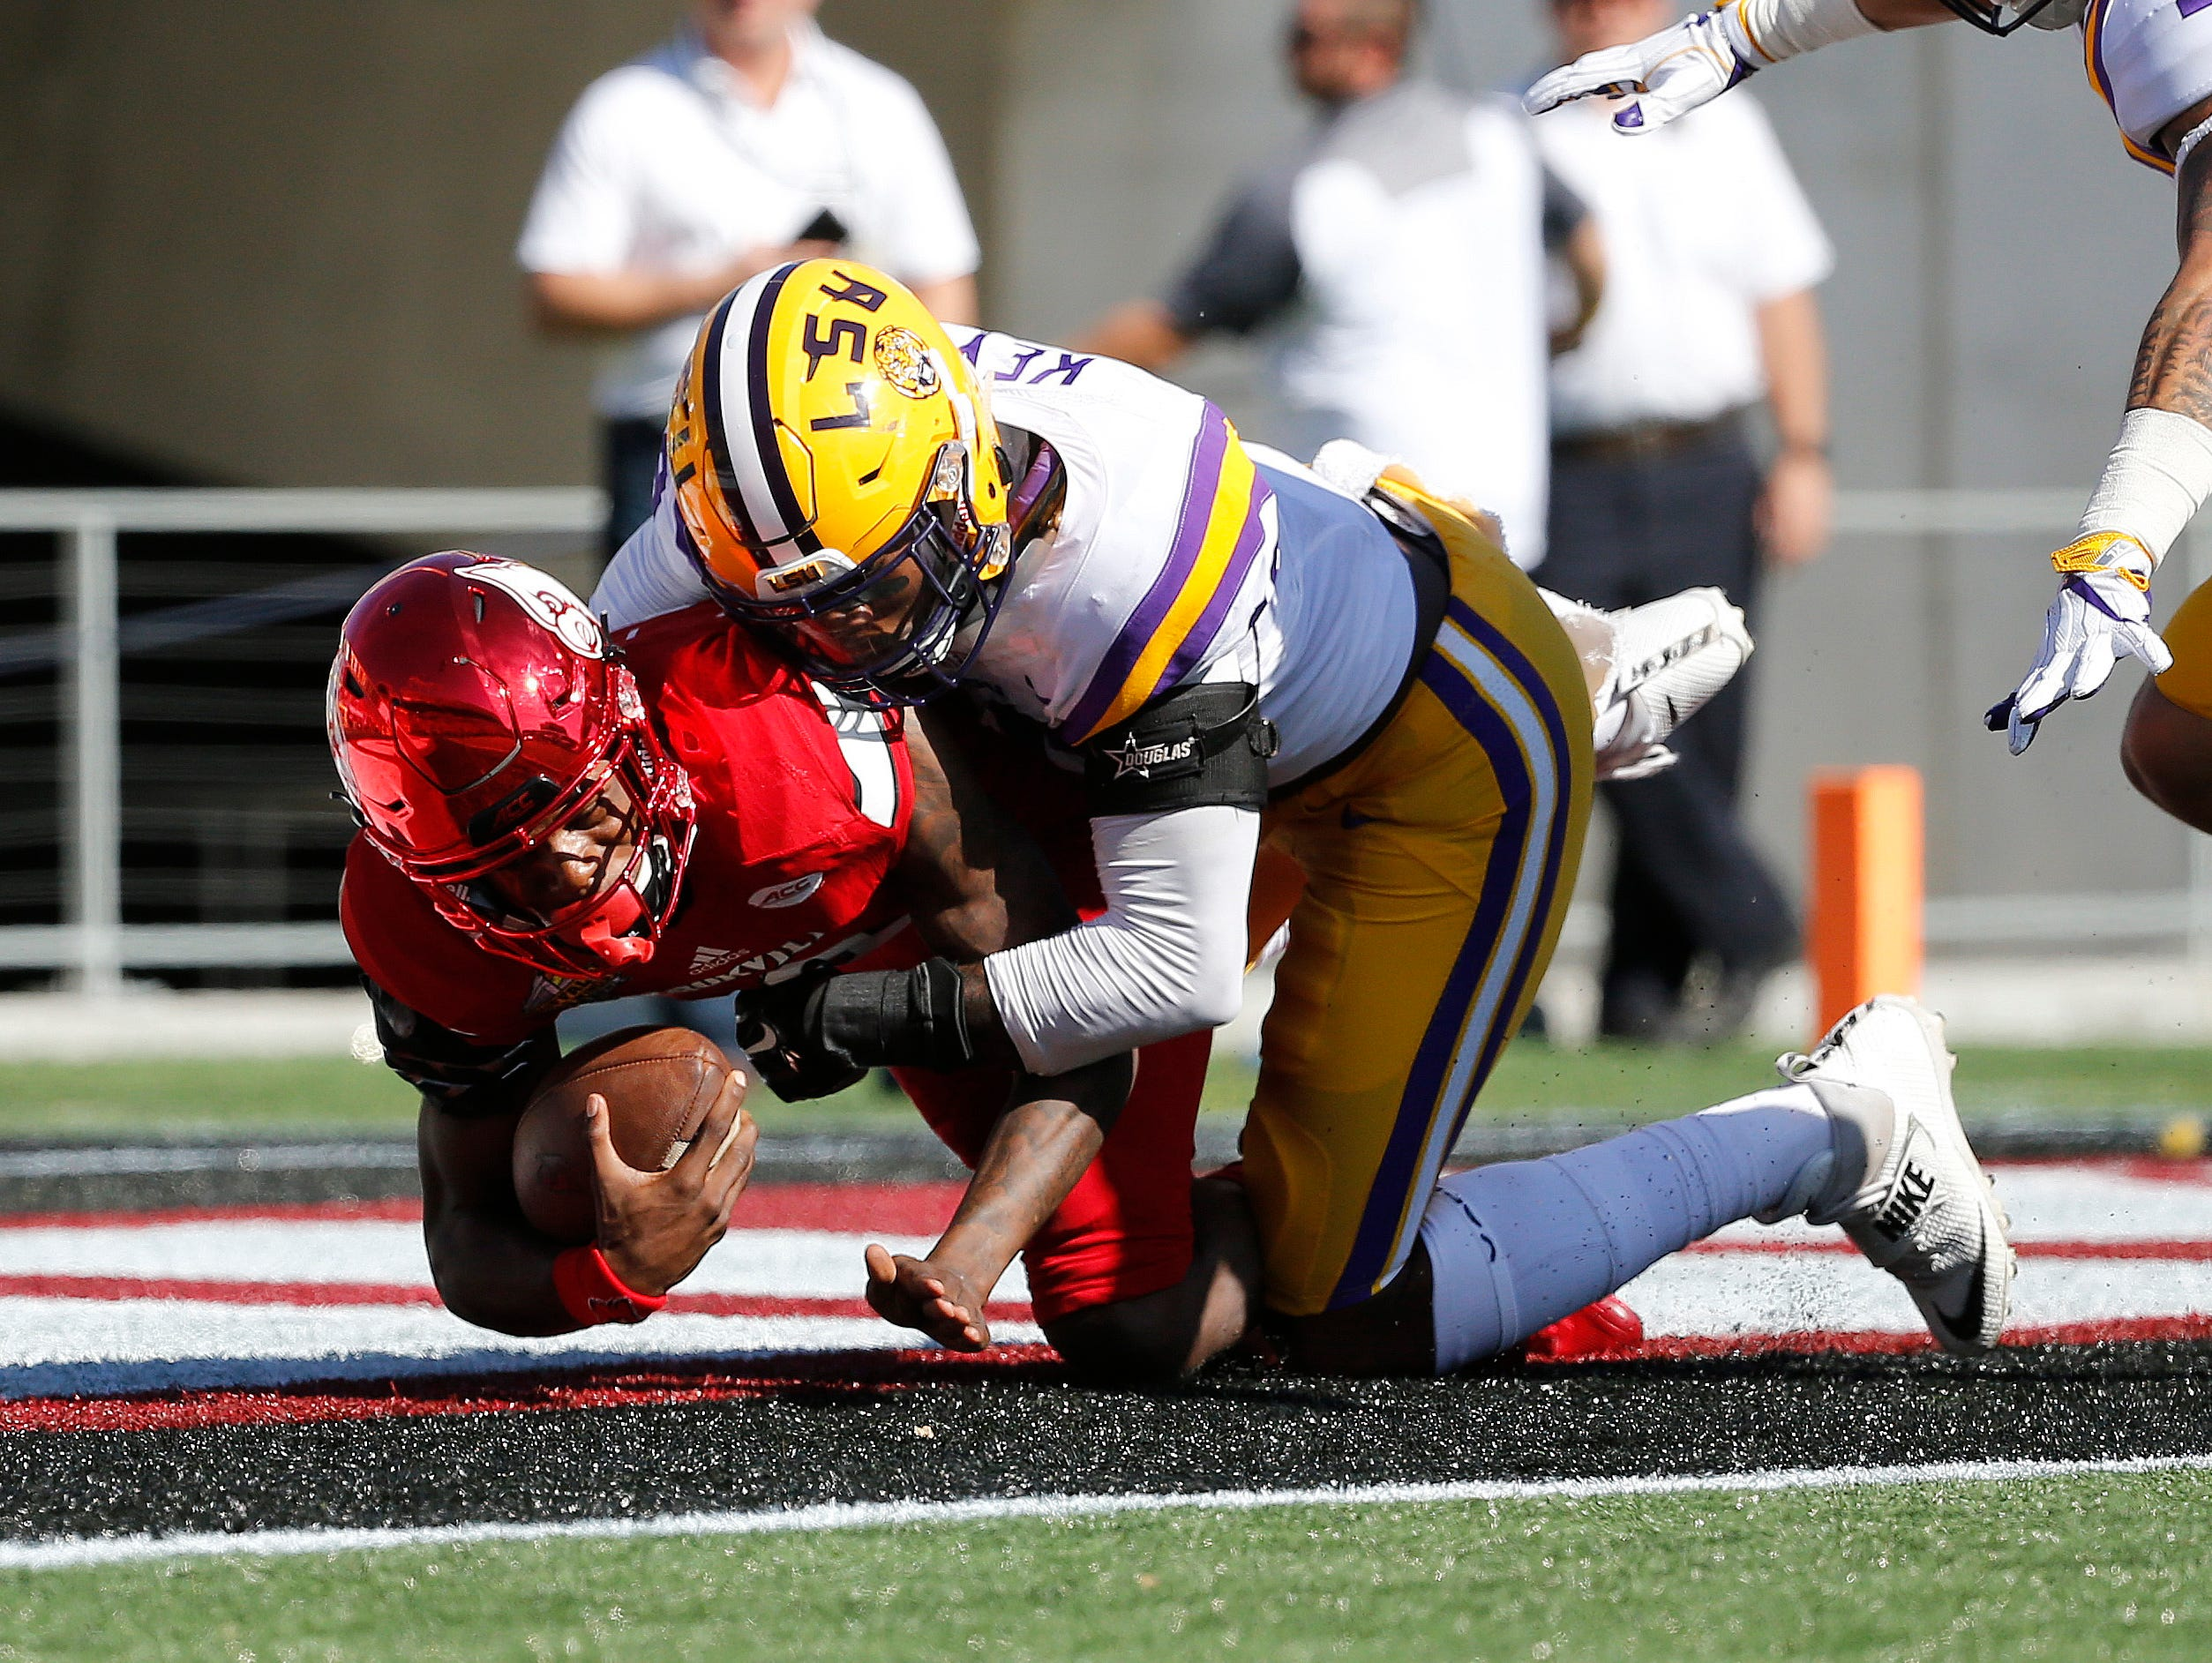 Louisville Cardinals quarterback Lamar Jackson (8) is sacked for a safety by LSU Tigers defensive end Arden Key (49) during the first half at Camping World Stadium.